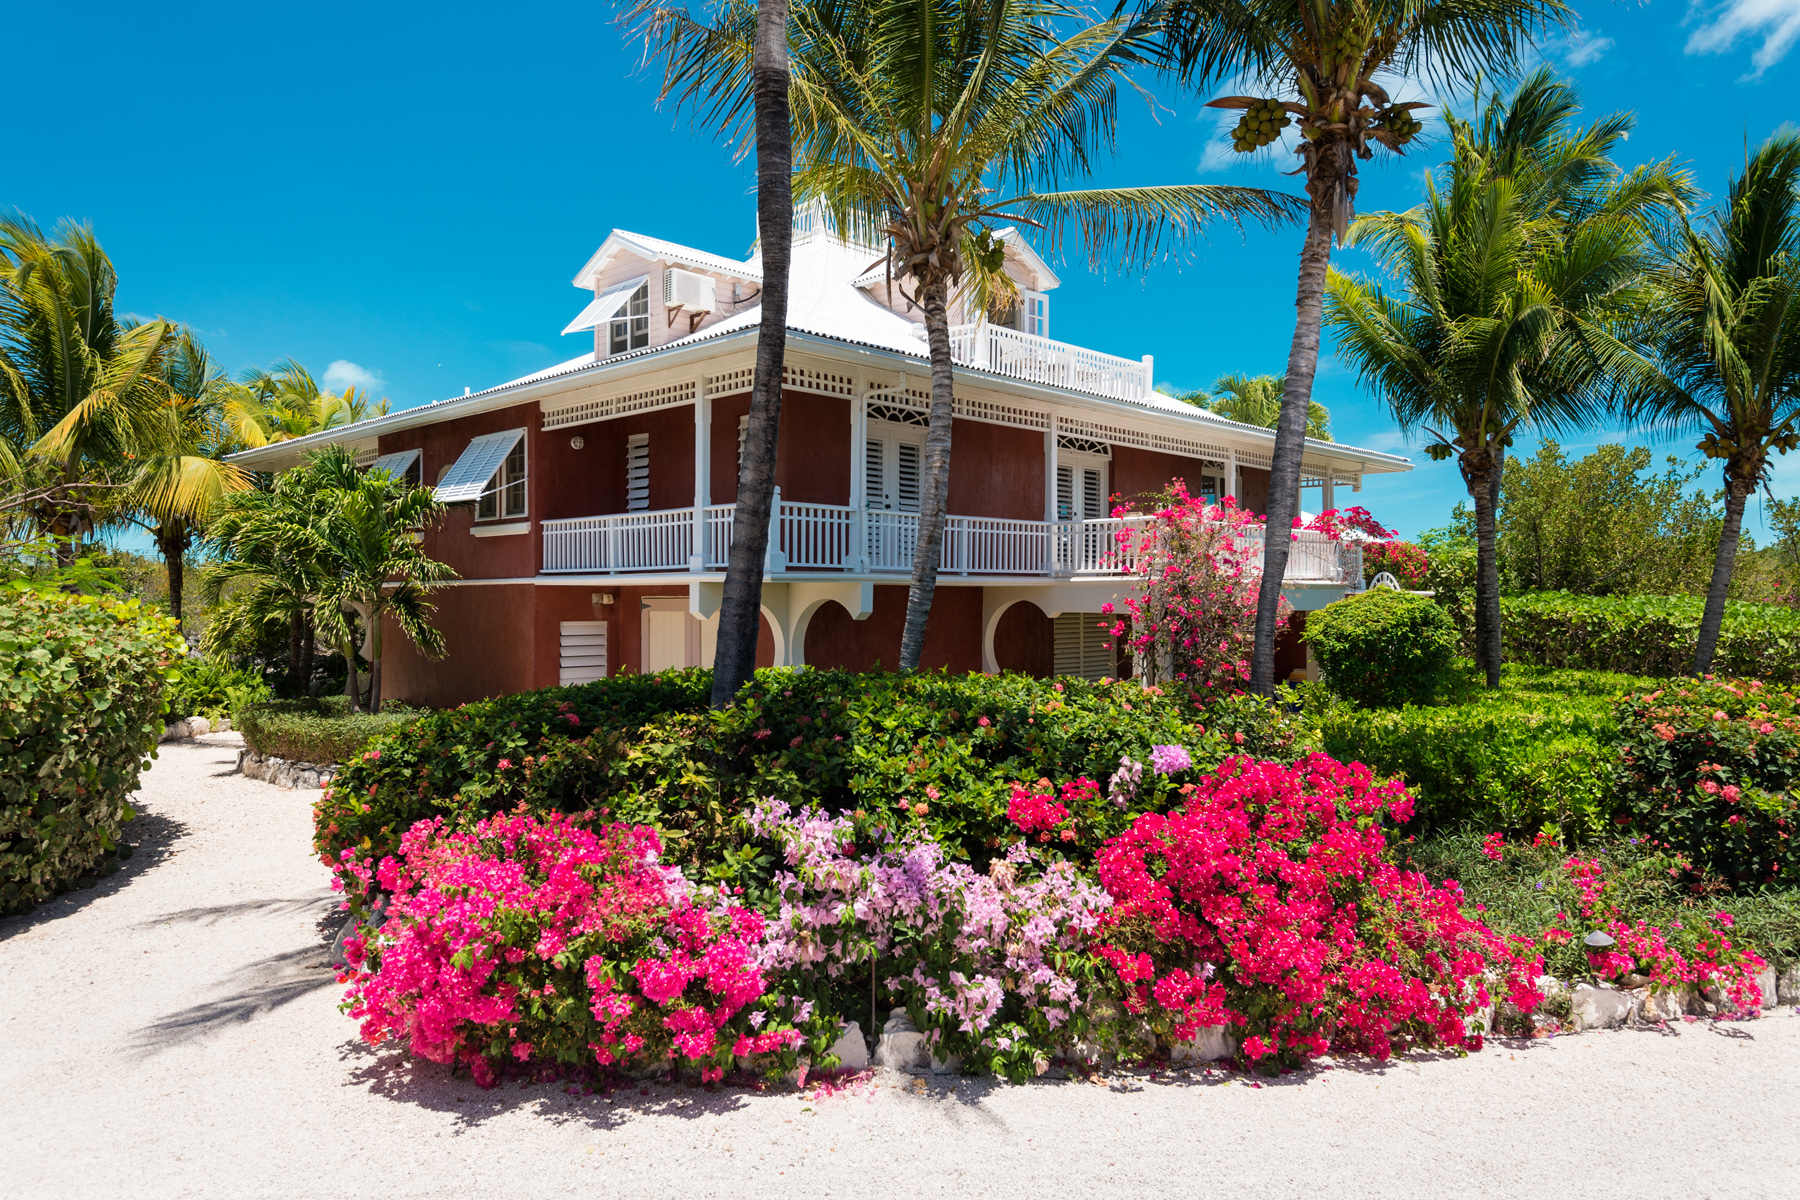 Single Family Home for Sale at Etoile De Mer Taylor Bay, Turks And Caicos Islands